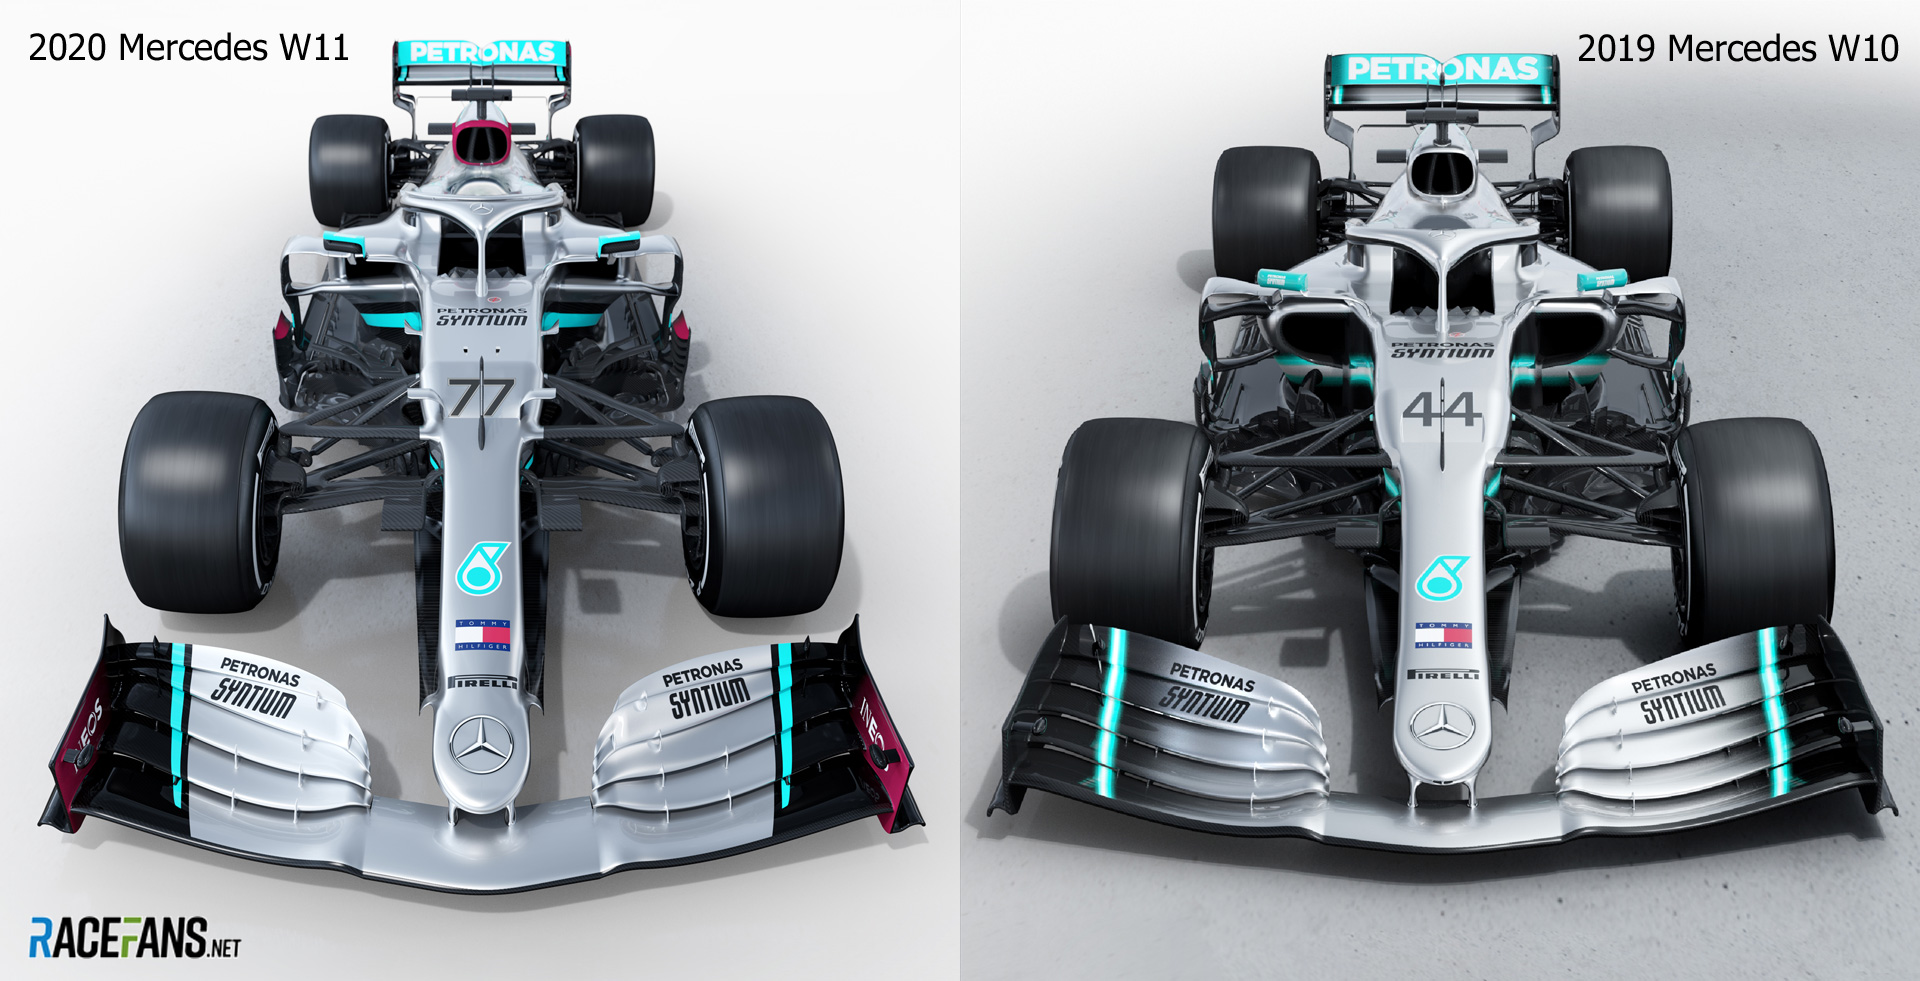 Mercedes 2020 and 2019 cars - front